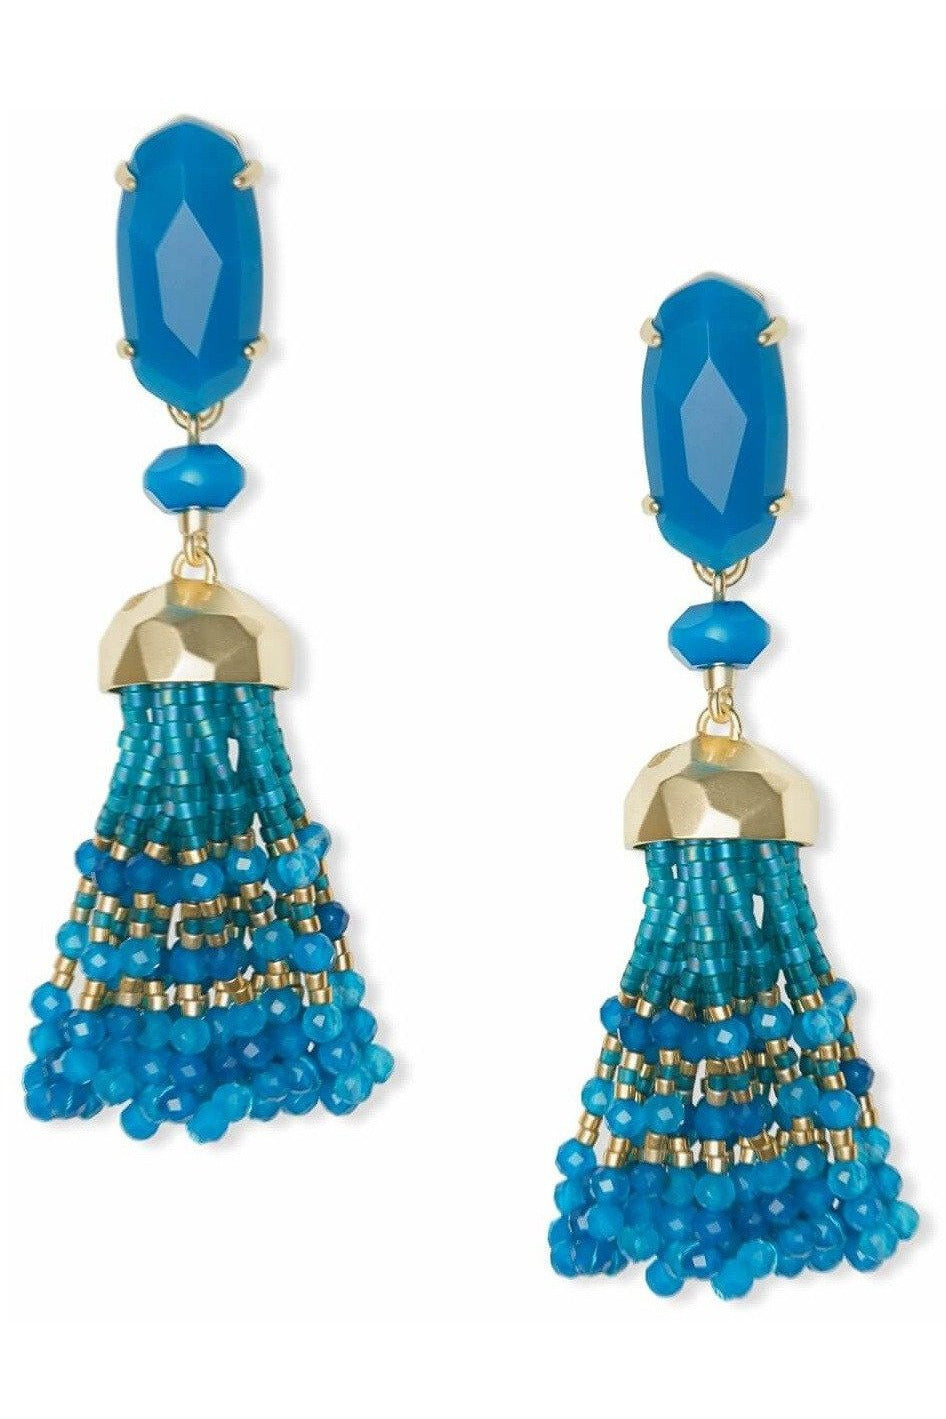 Kendra Scott Dove Gold Statement Earrings In Teal Agate